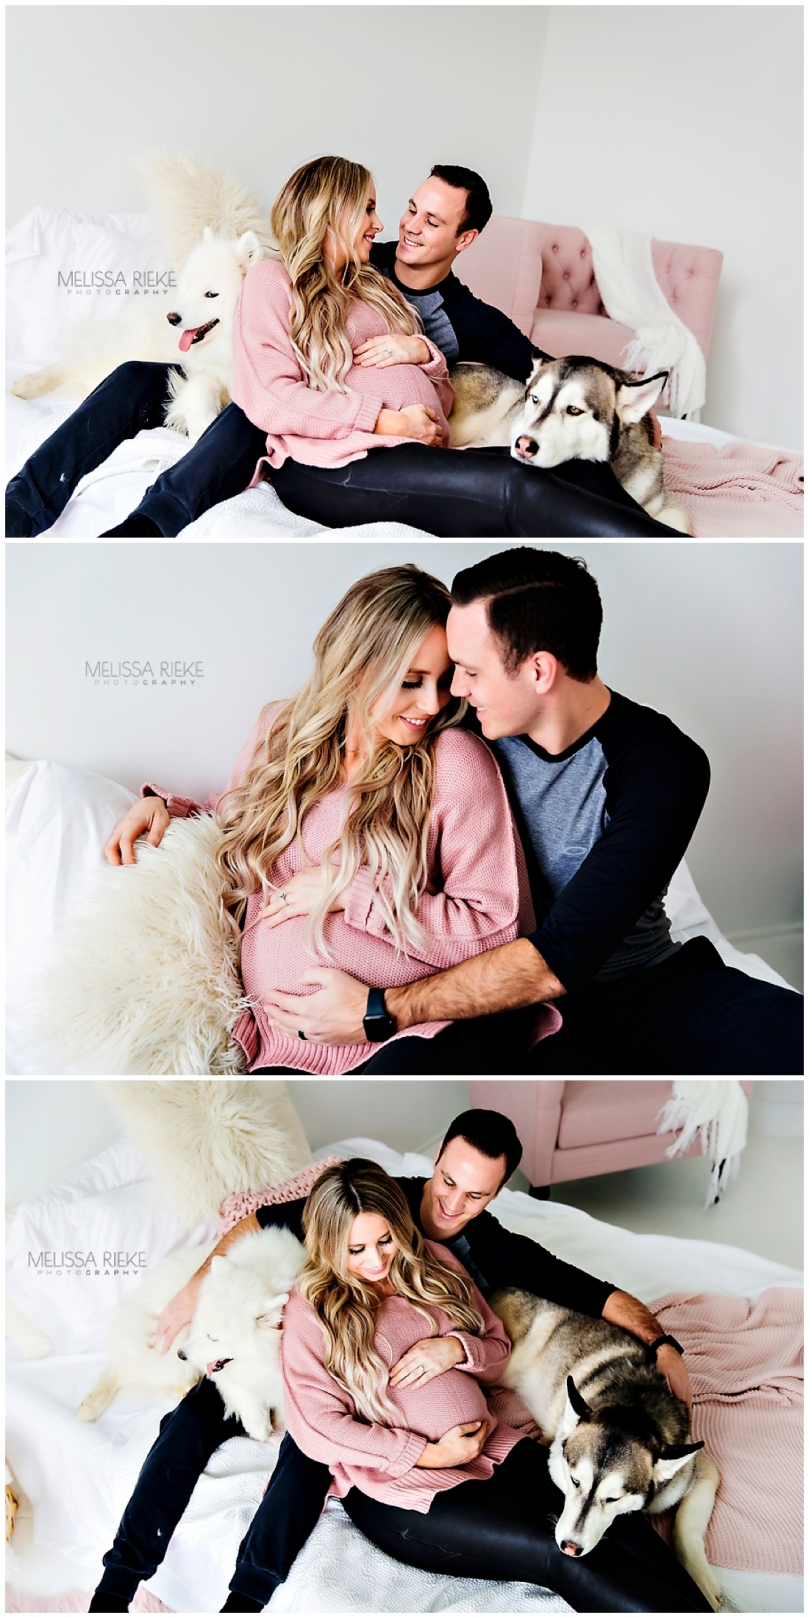 Studio Maternity Photos with Pups Dogs Husband White Studio On Bed Kansas City Maternity